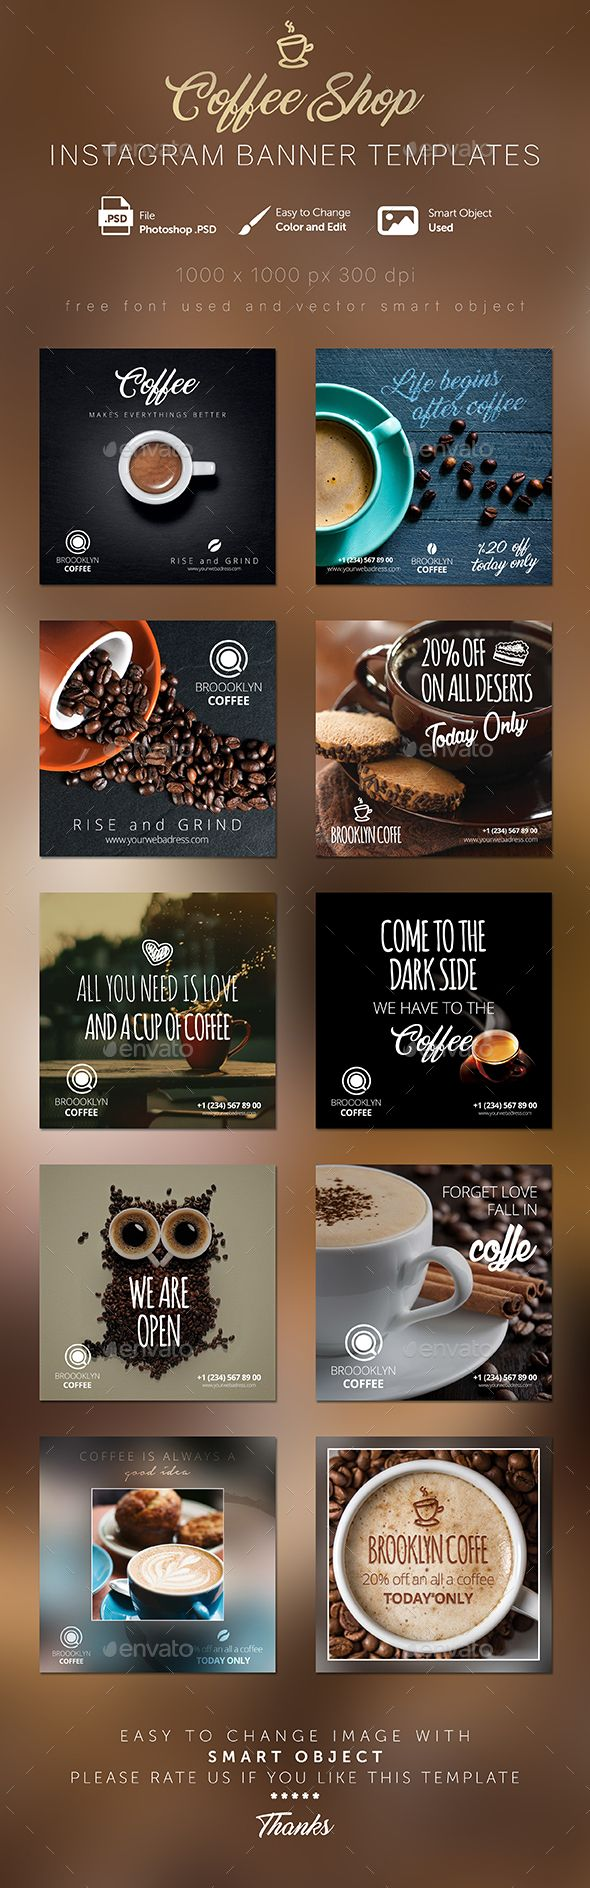 Coffee Shop Instagram Banner Templates - Social Media Web Template PSD. Download…